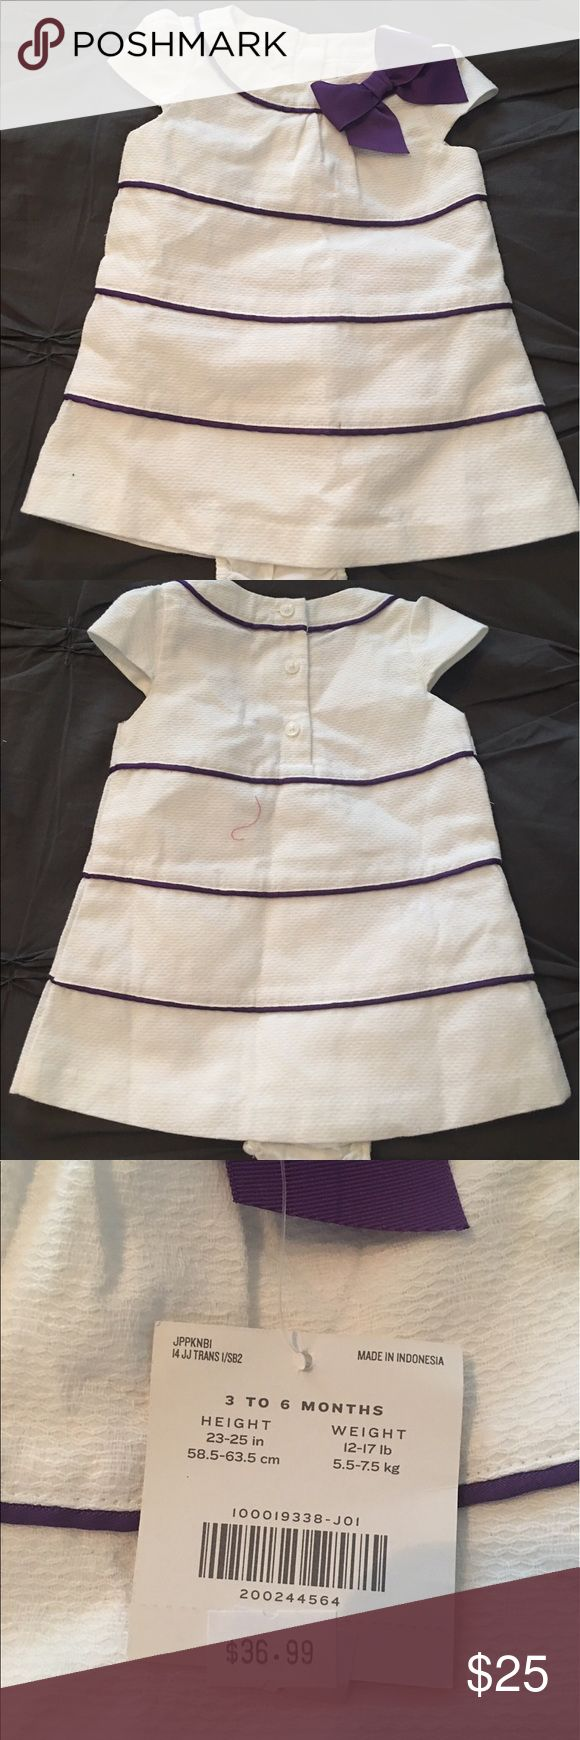 🆕 Janie and Jack Purple and cream dress 👗 Cute spring dress. 100% Cotton.  Fully lined. Includes diaper cover. Machine wash. Smoke free, pet free home. Janie and Jack Dresses